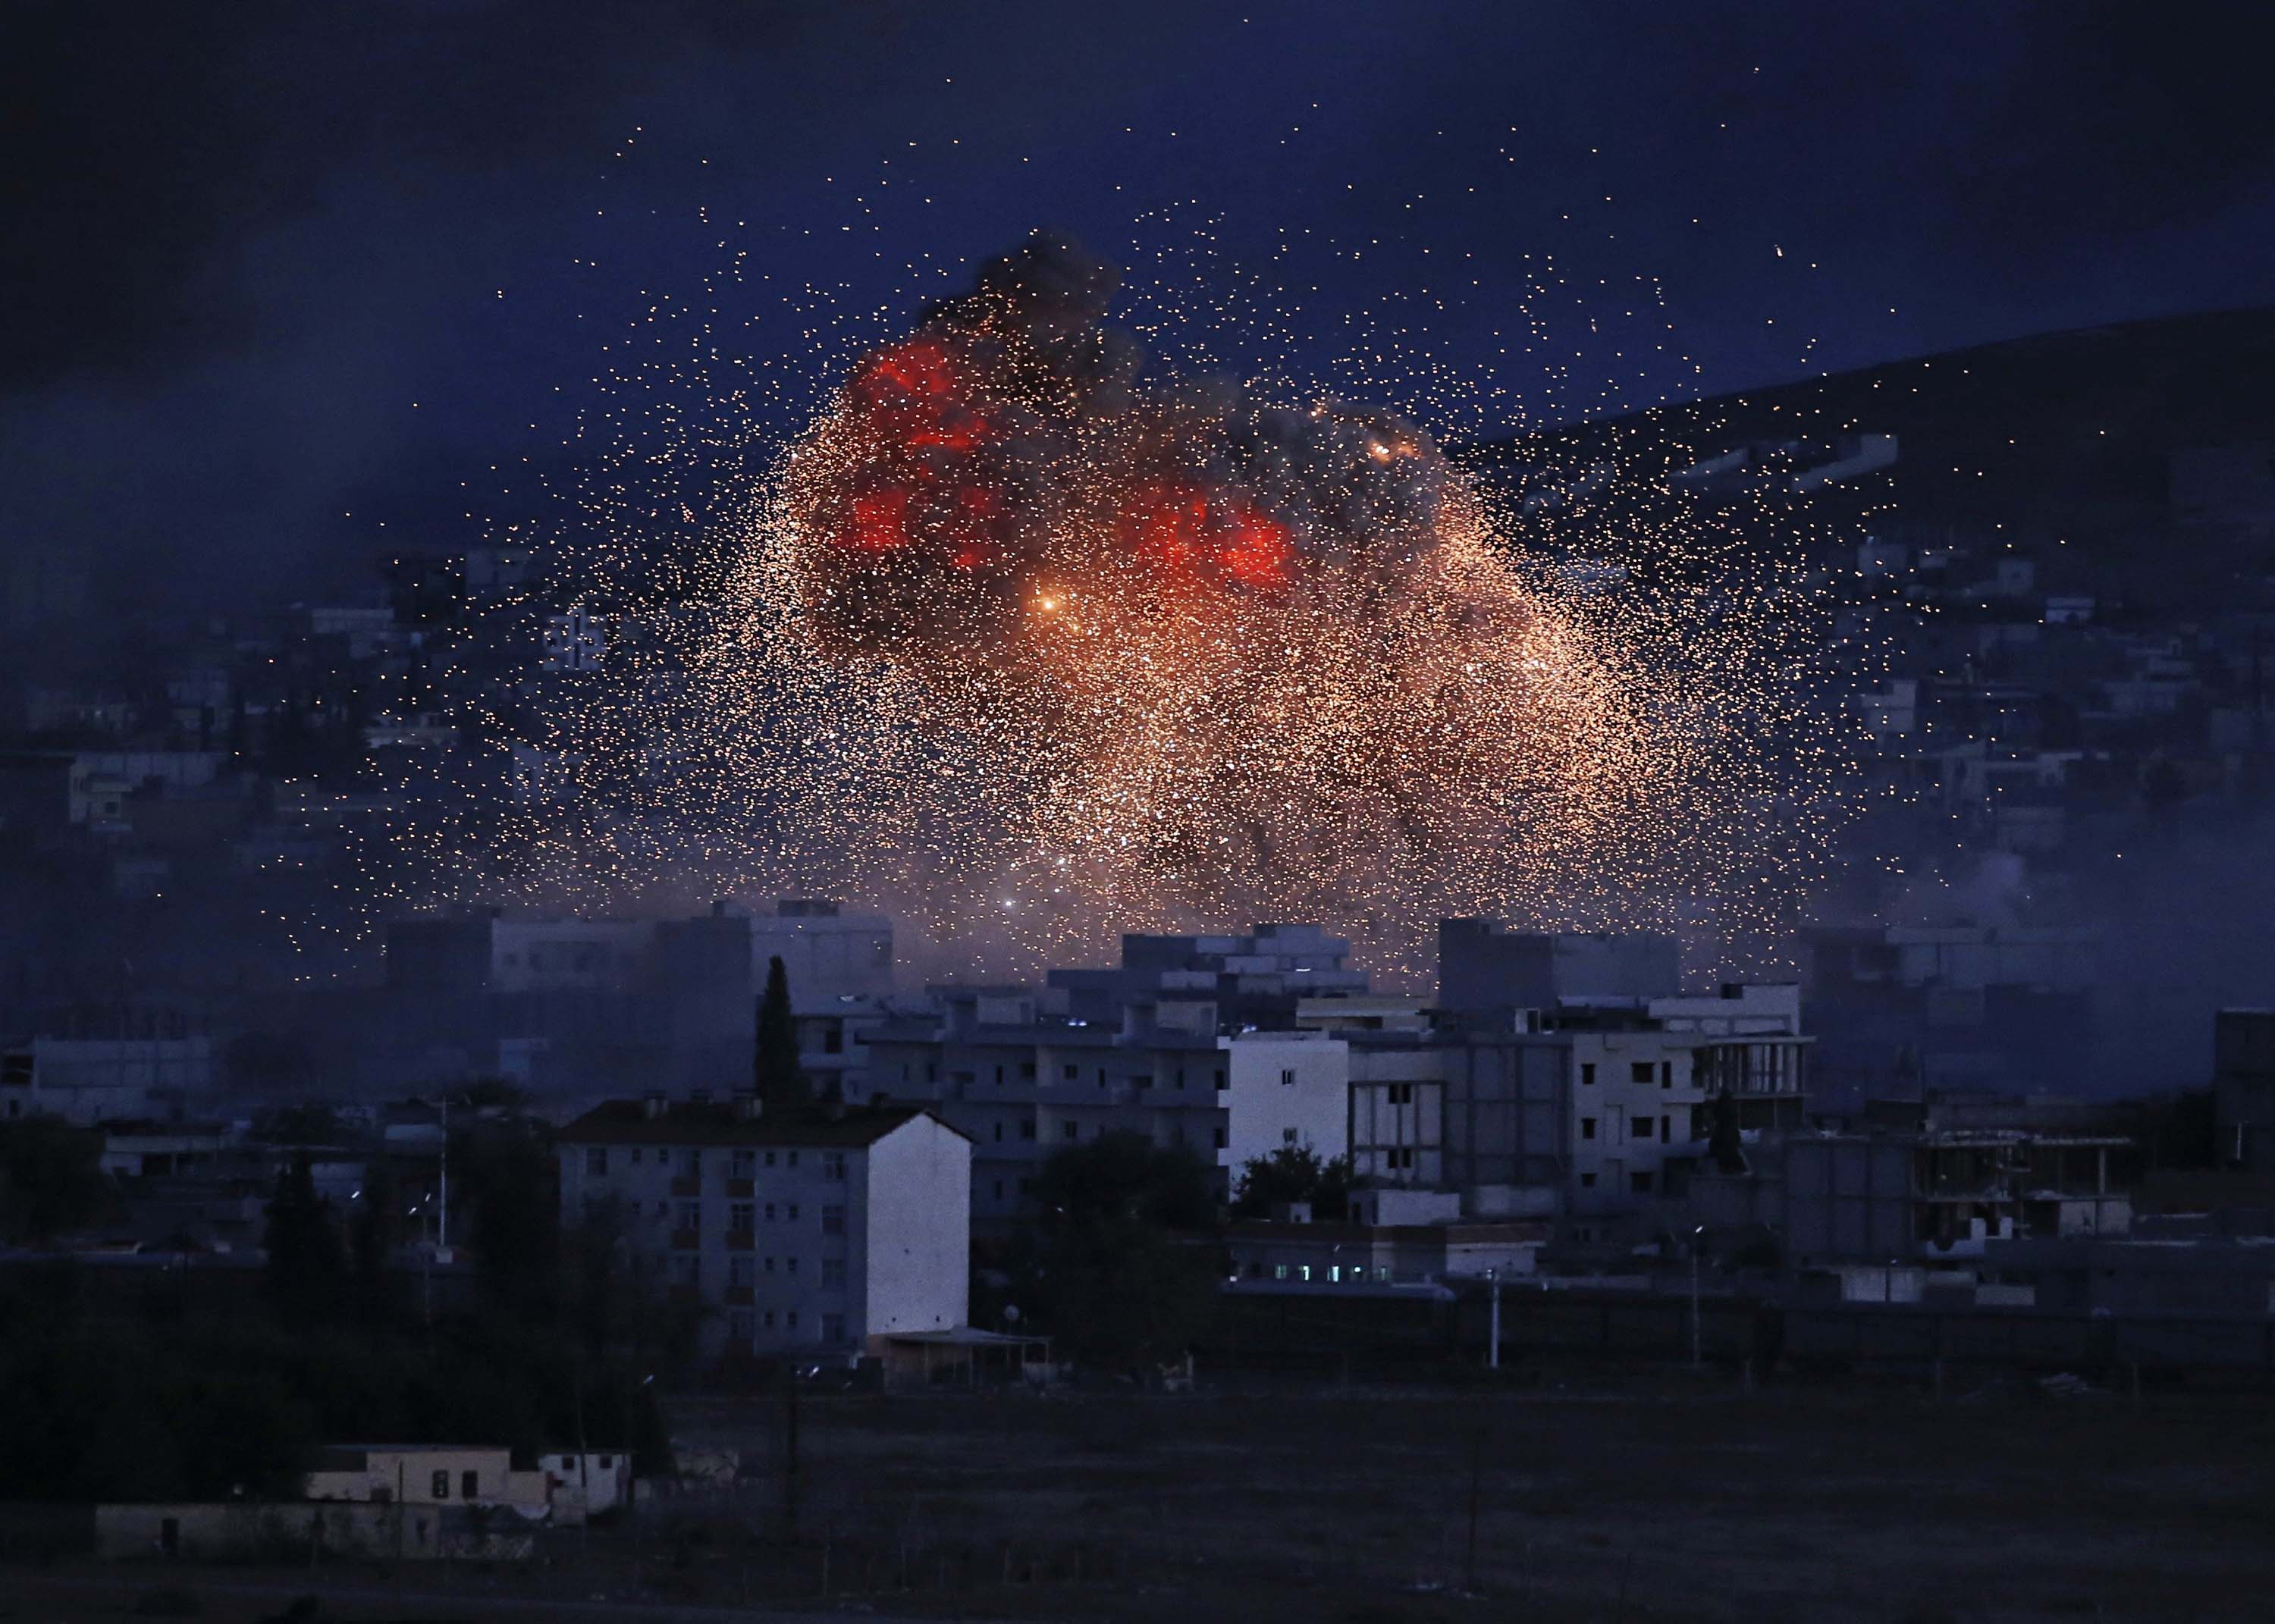 A U.S.-led coalition air strike over the town of Kobani, where Kurds are battling ISIS